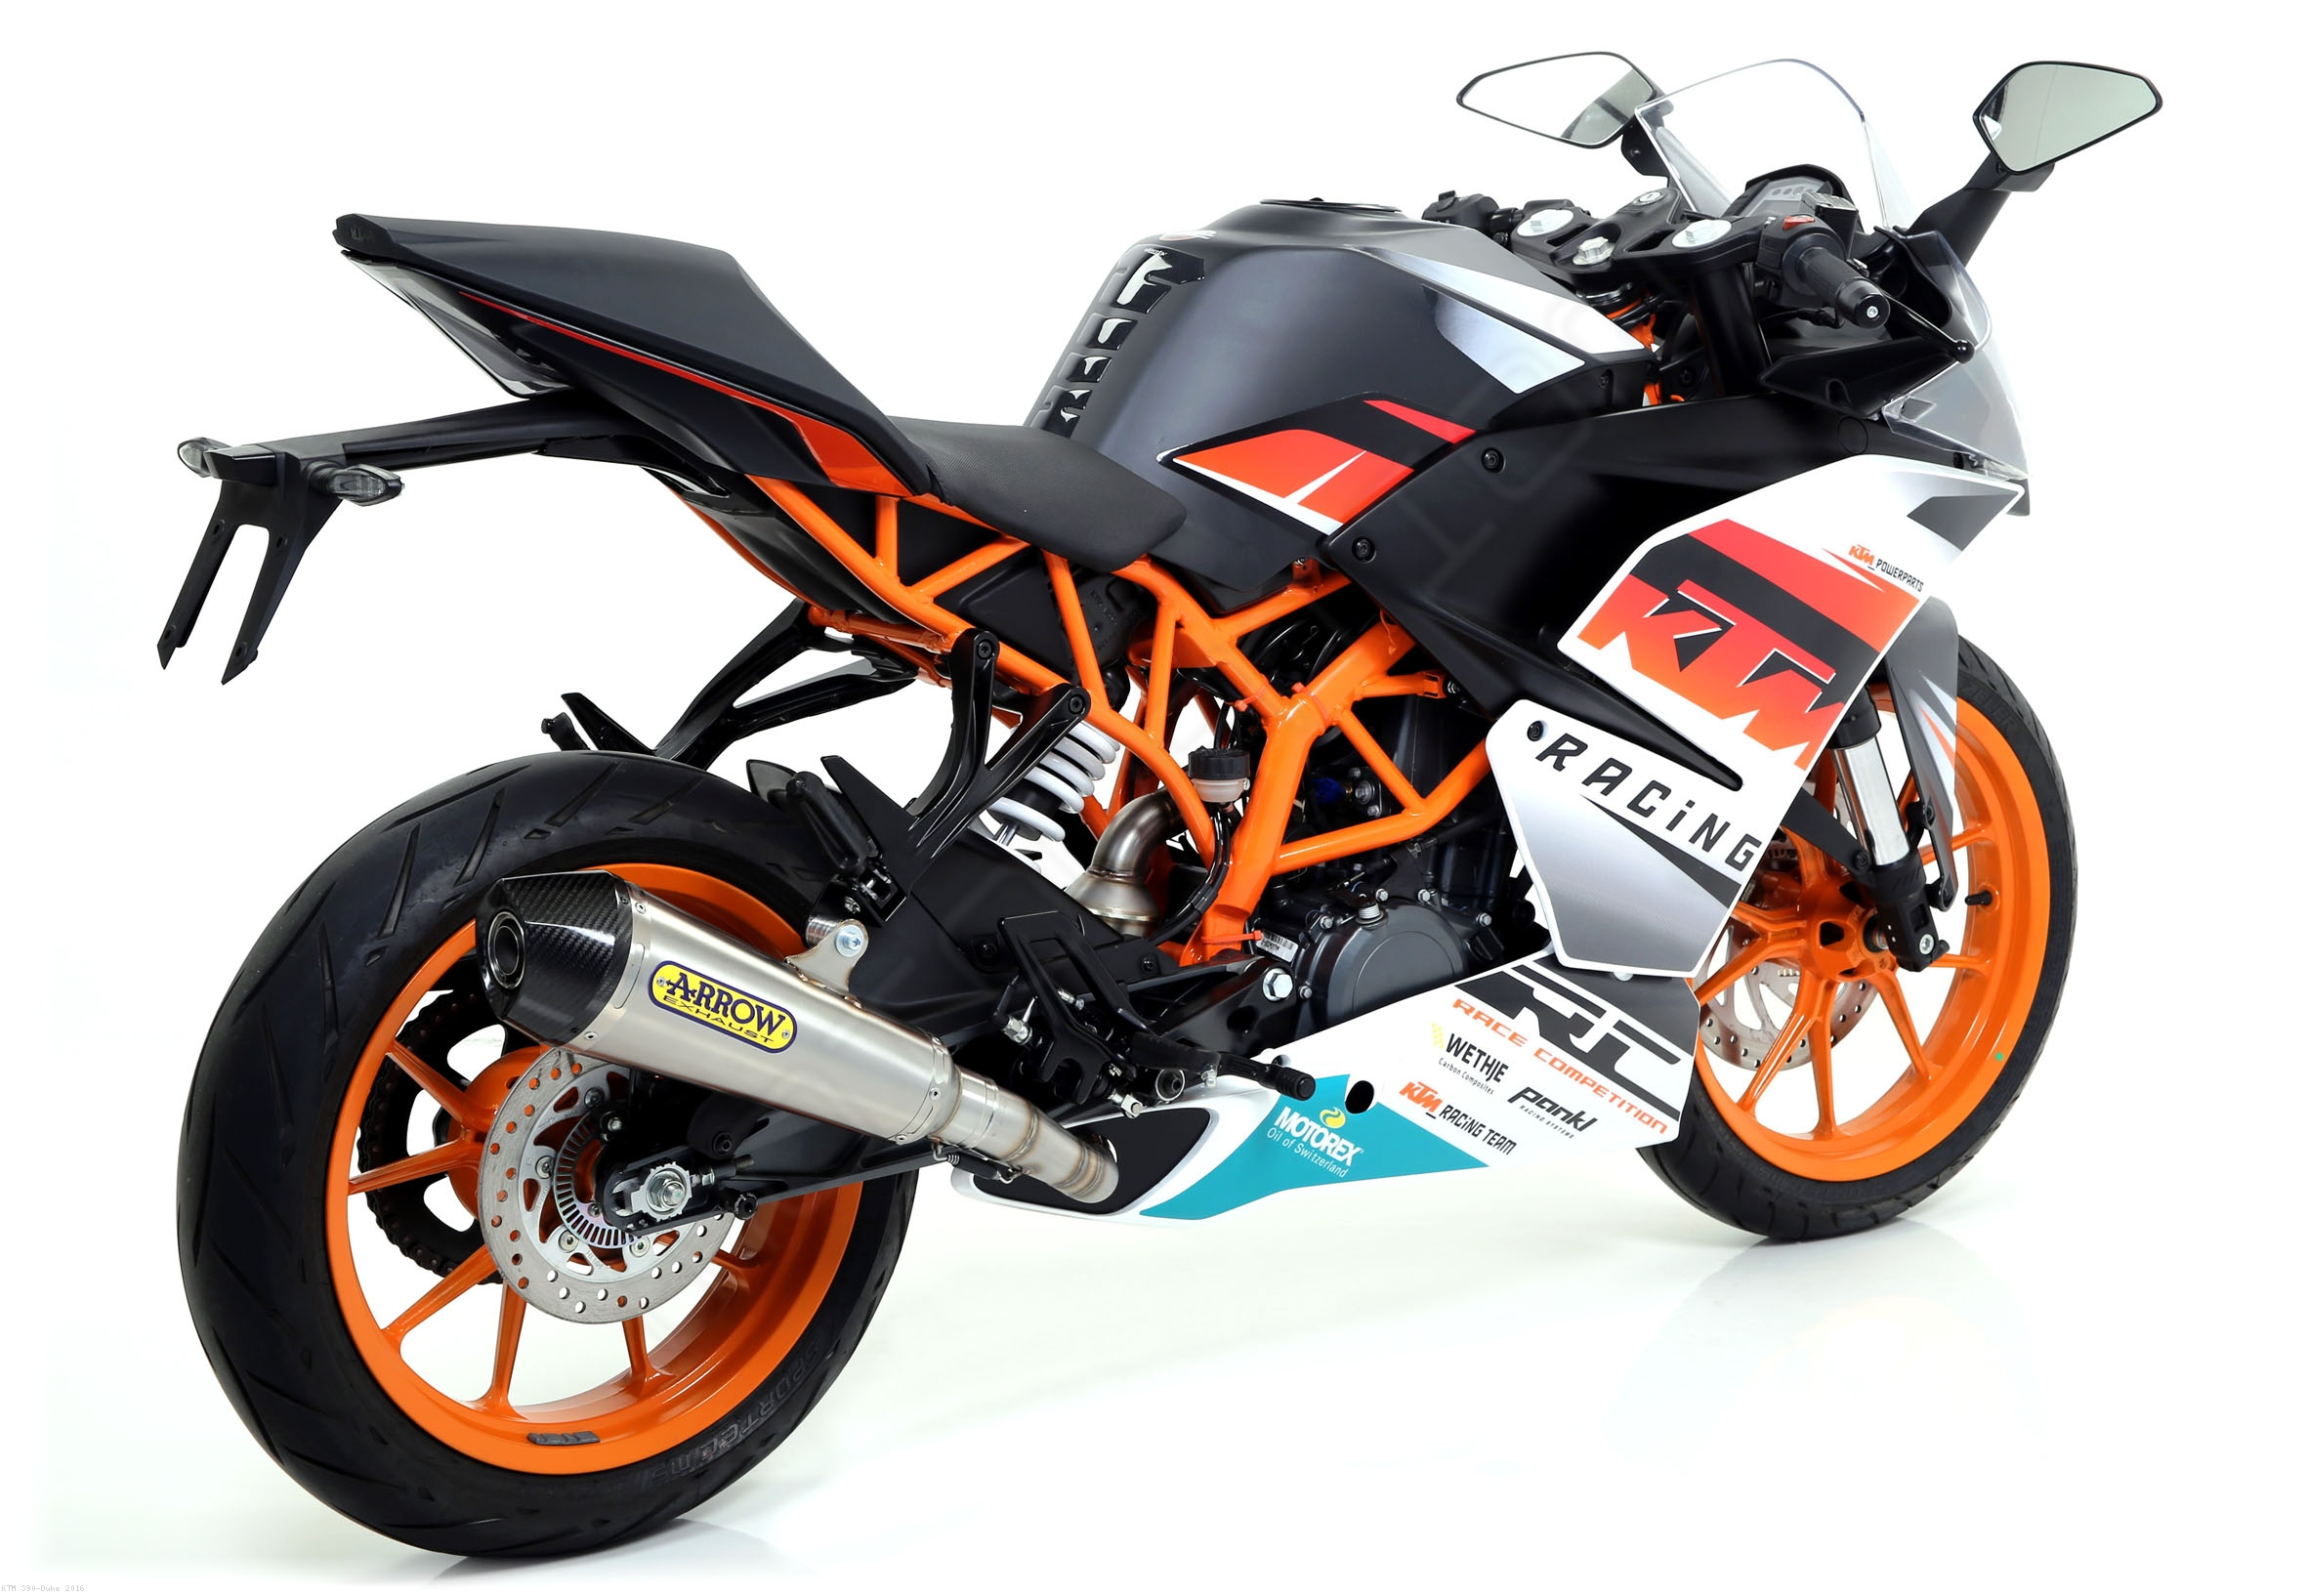 arrow x cone slip on exhaust ktm 390 duke 2016 71813xki. Black Bedroom Furniture Sets. Home Design Ideas